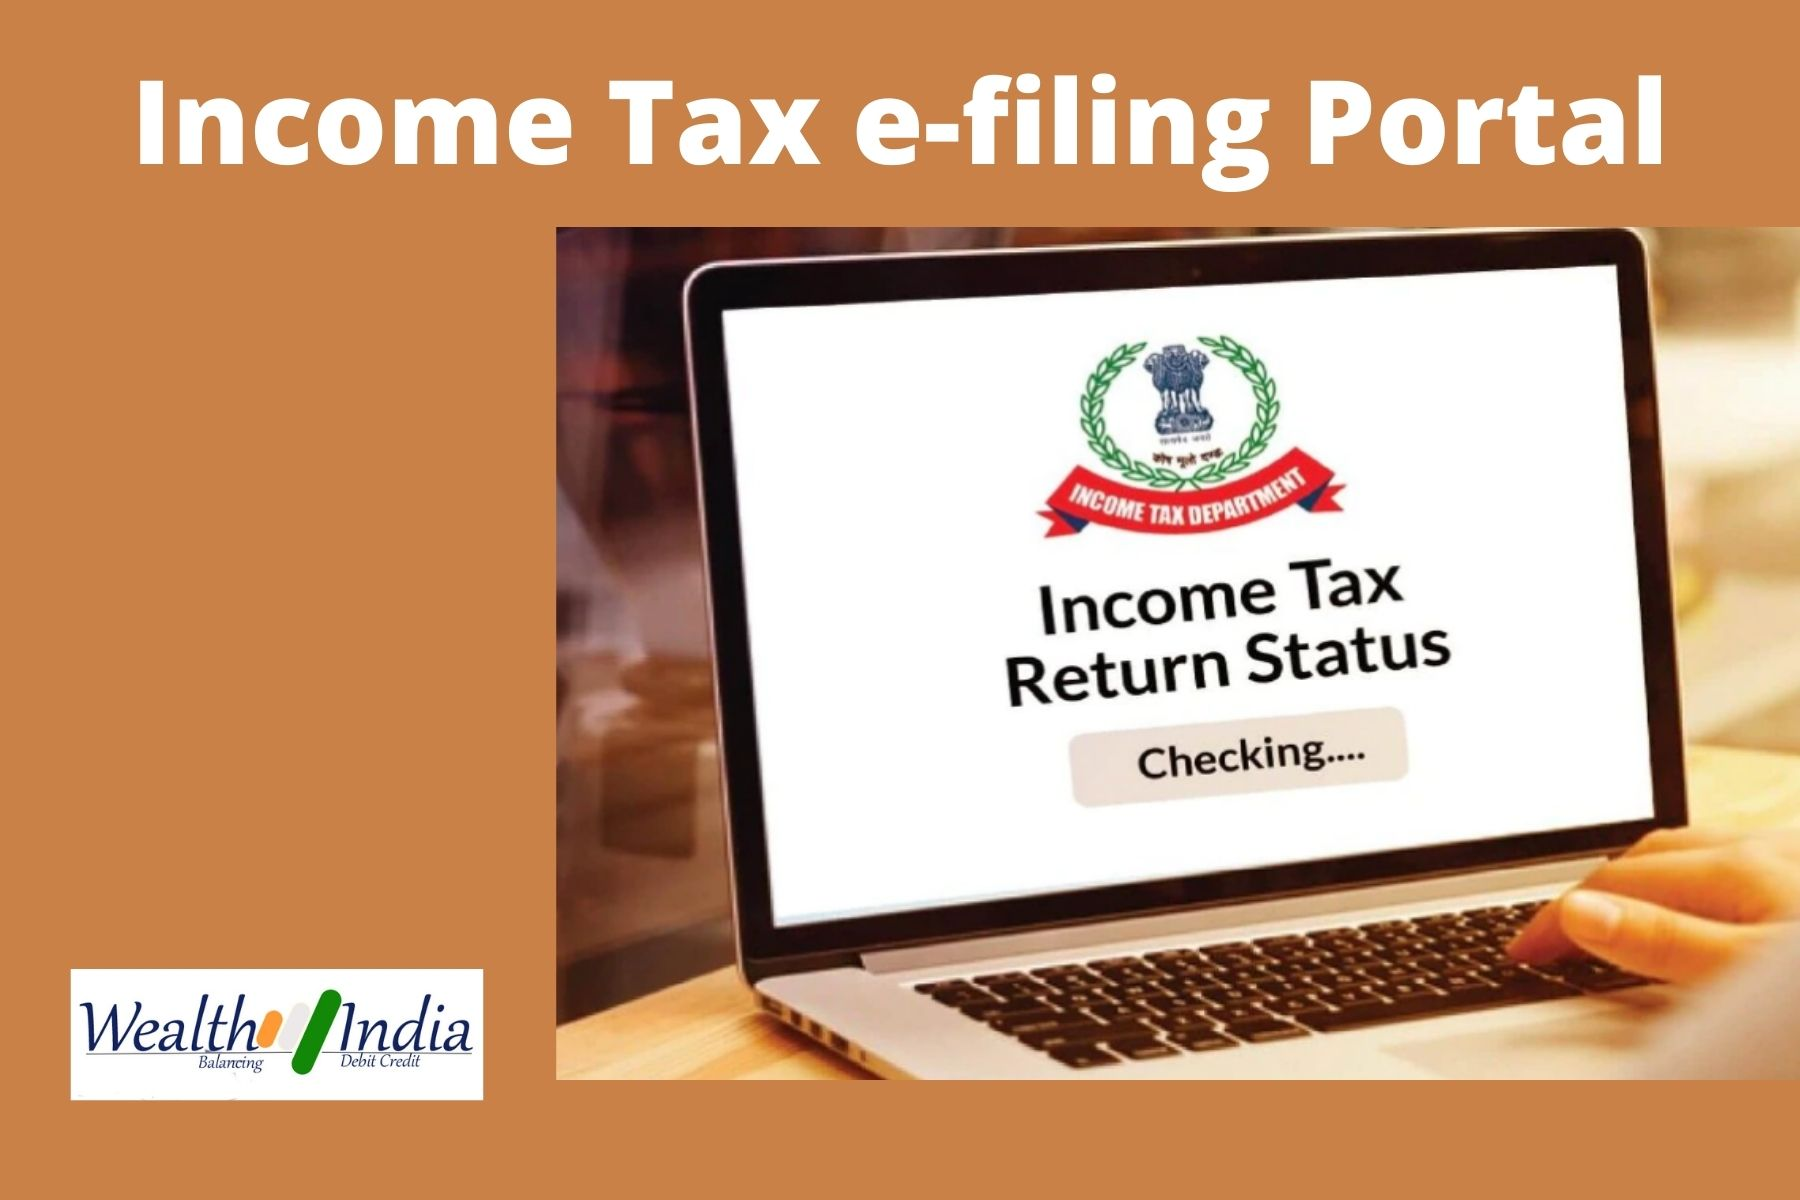 Check out the features of New Income Tax e-filing website - Wealth4india